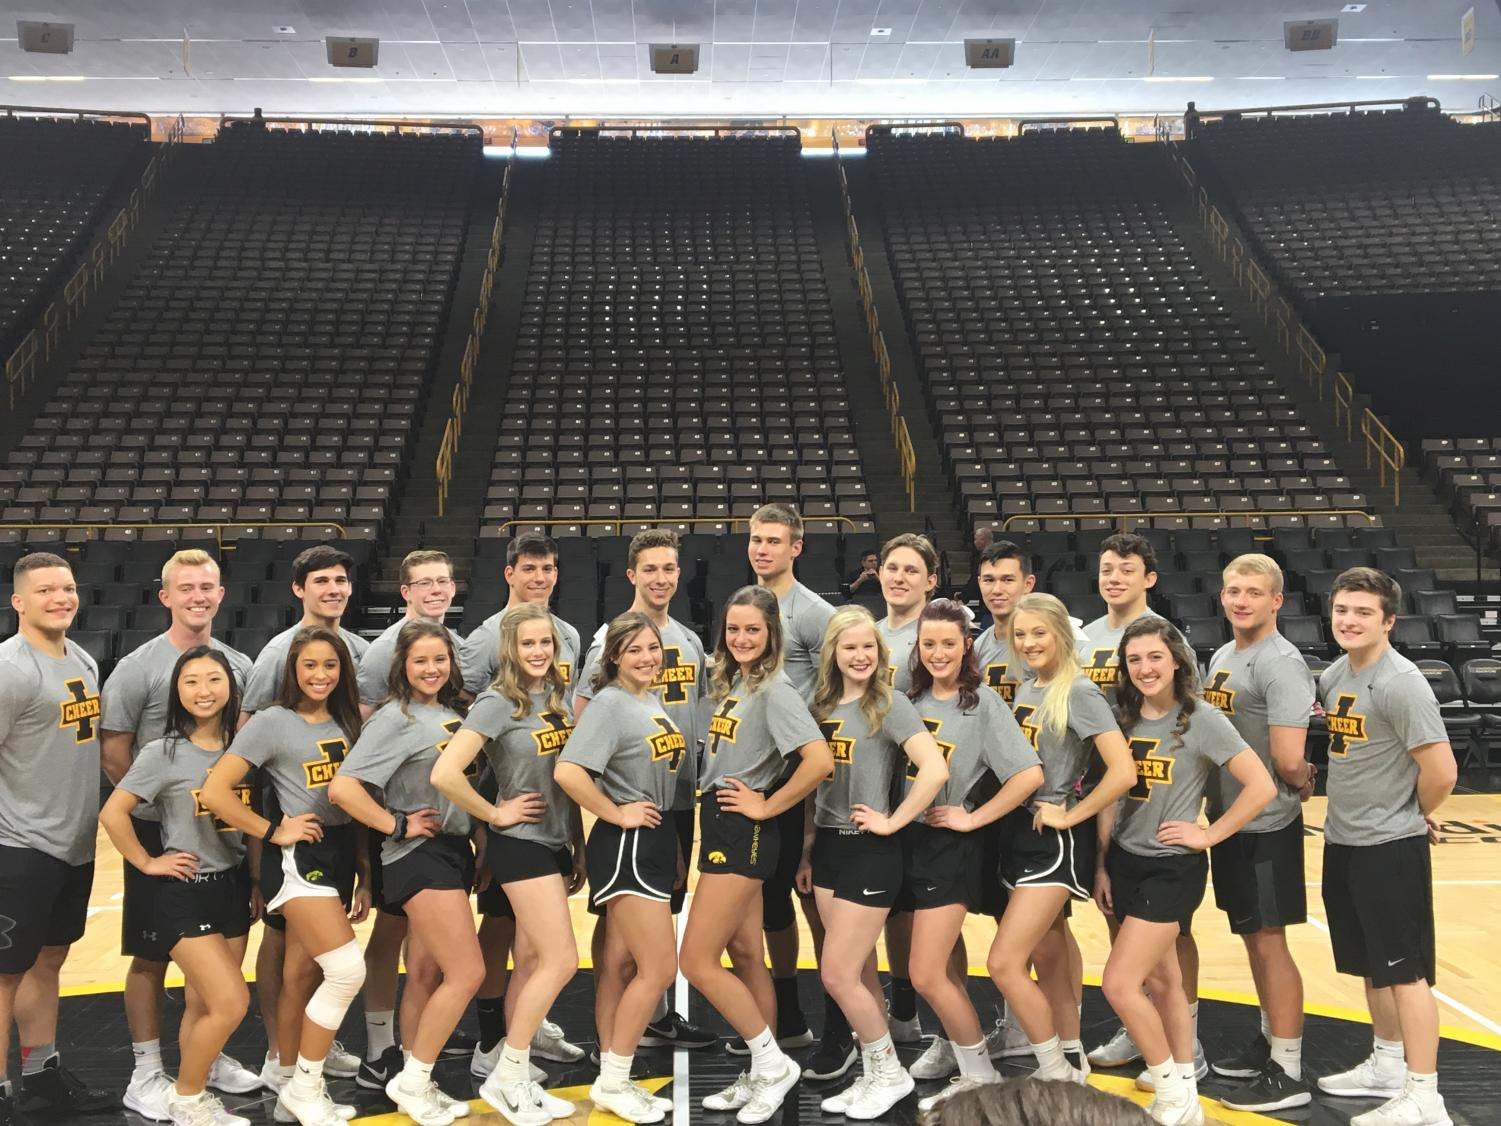 The 2018 University of Iowa Spirit Squad poses for a photo (Brosius front row, far right).